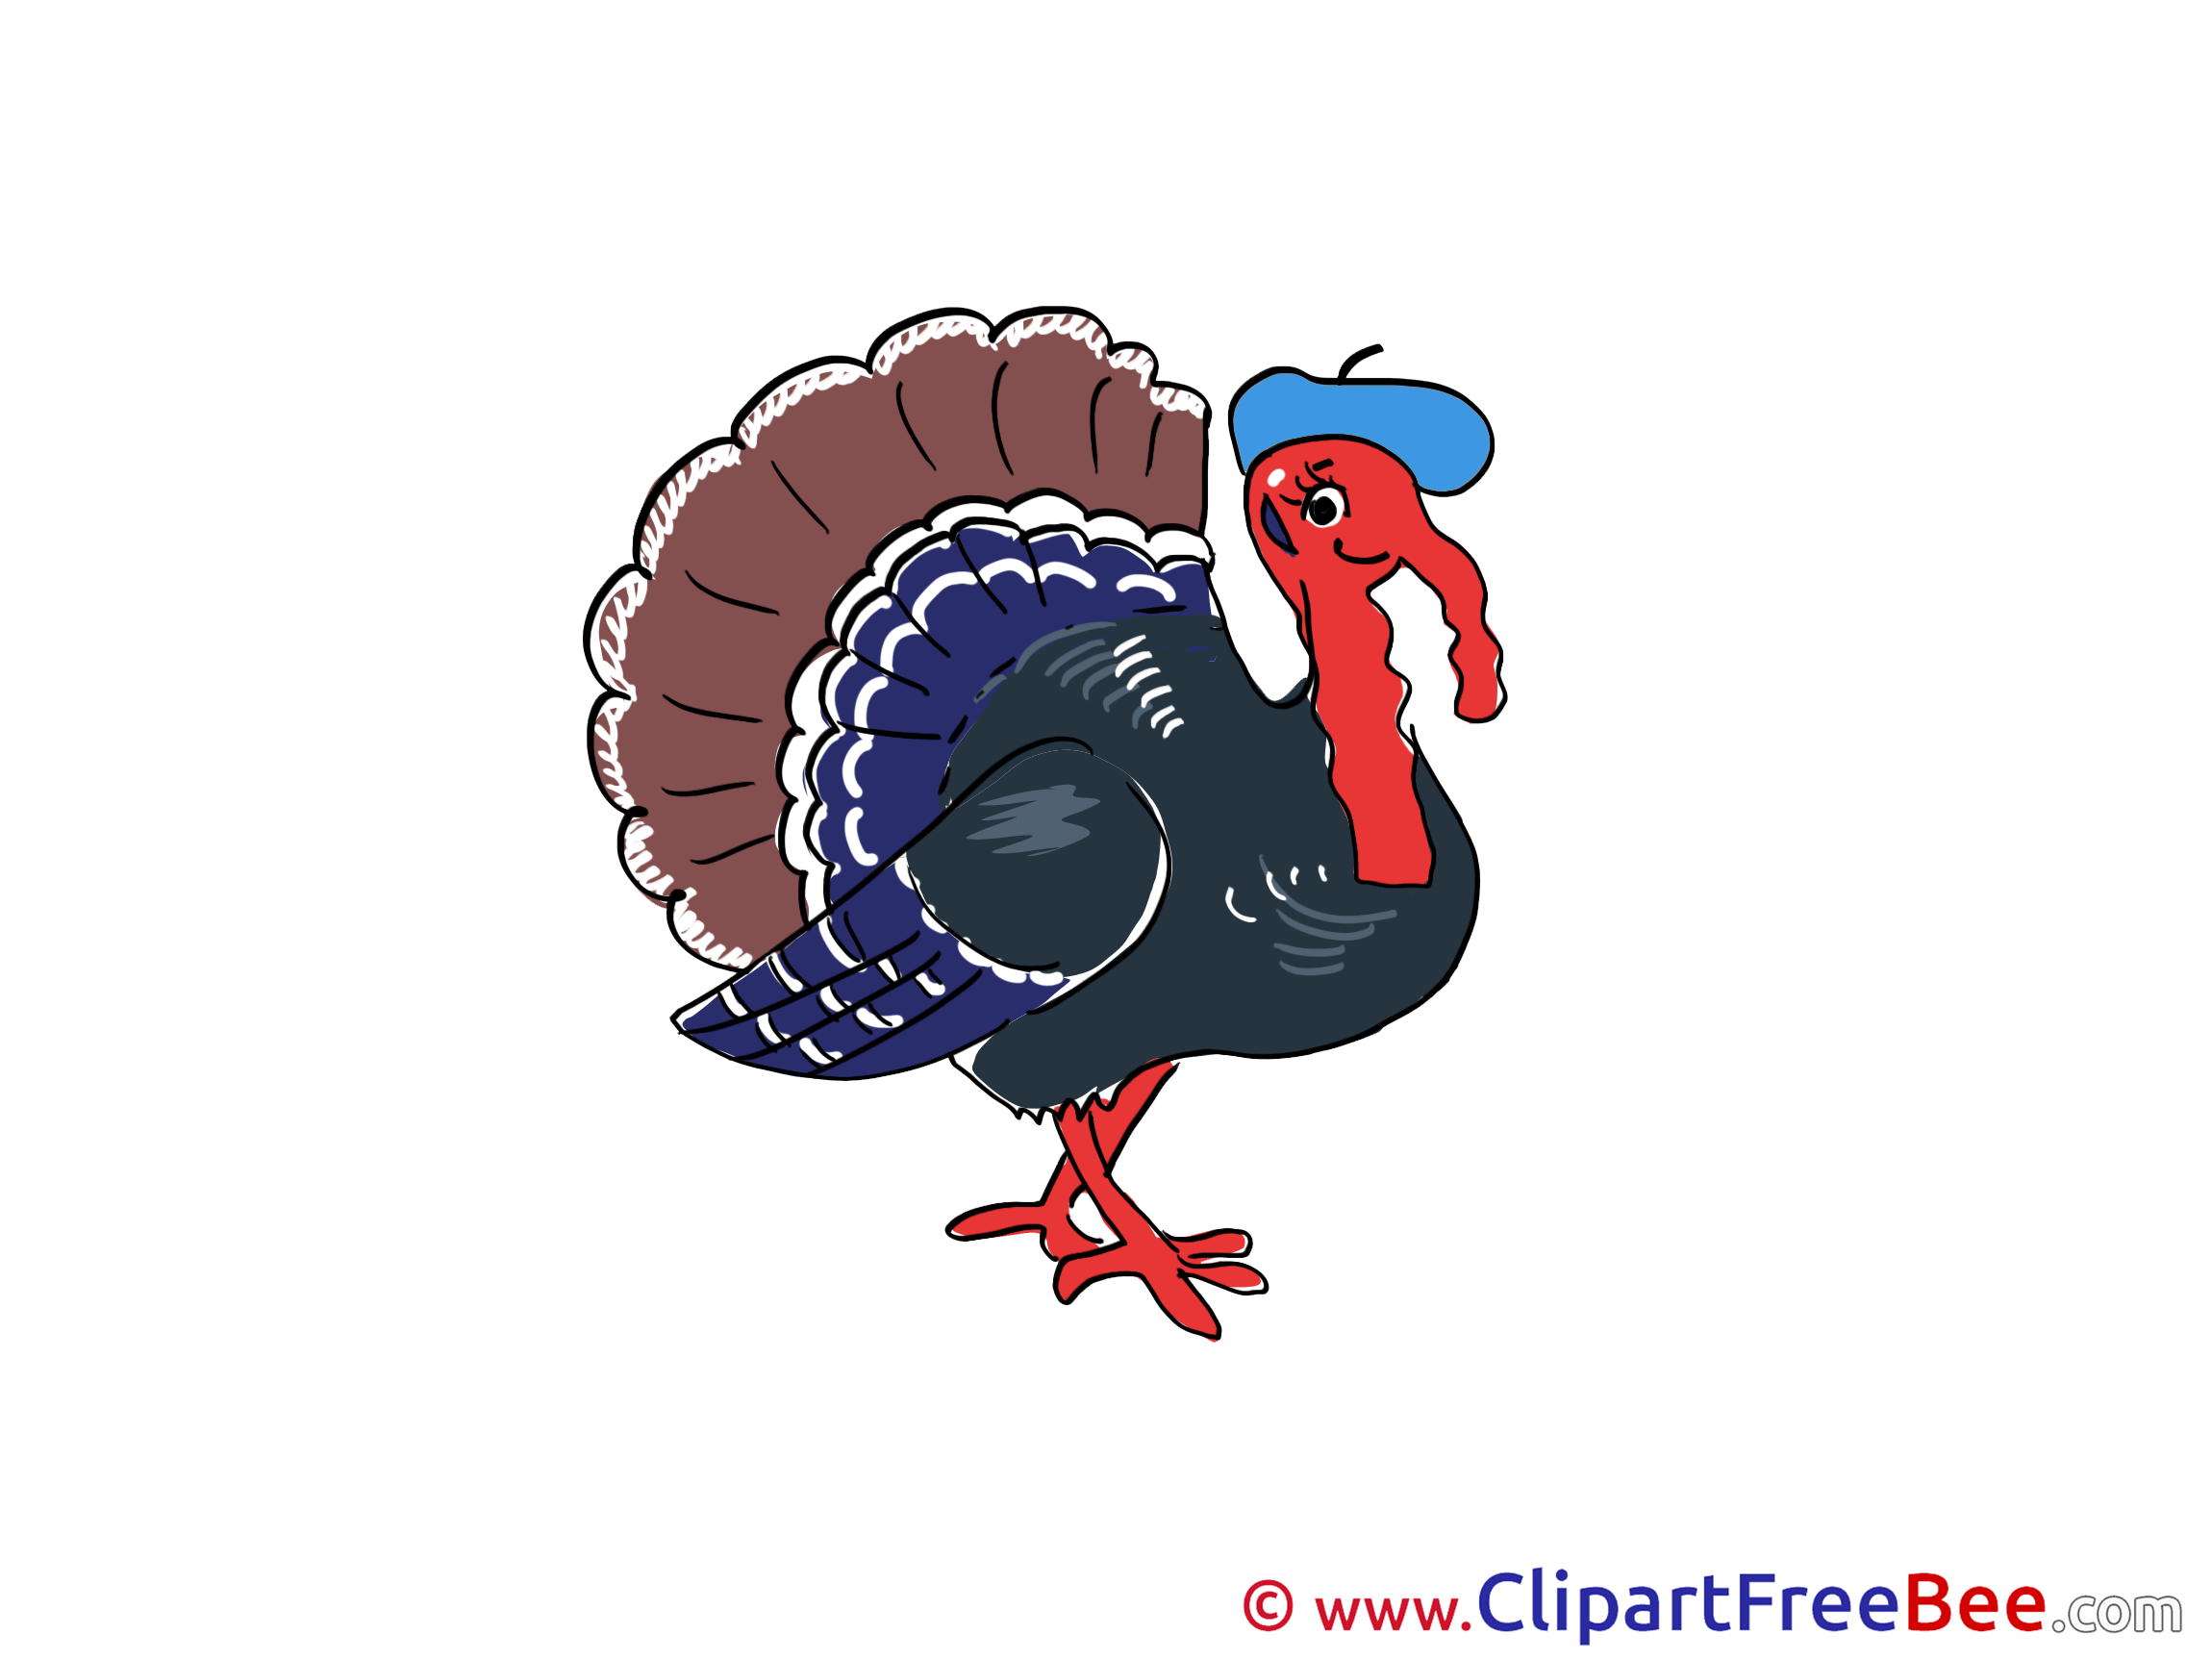 Turkey printable Images for download